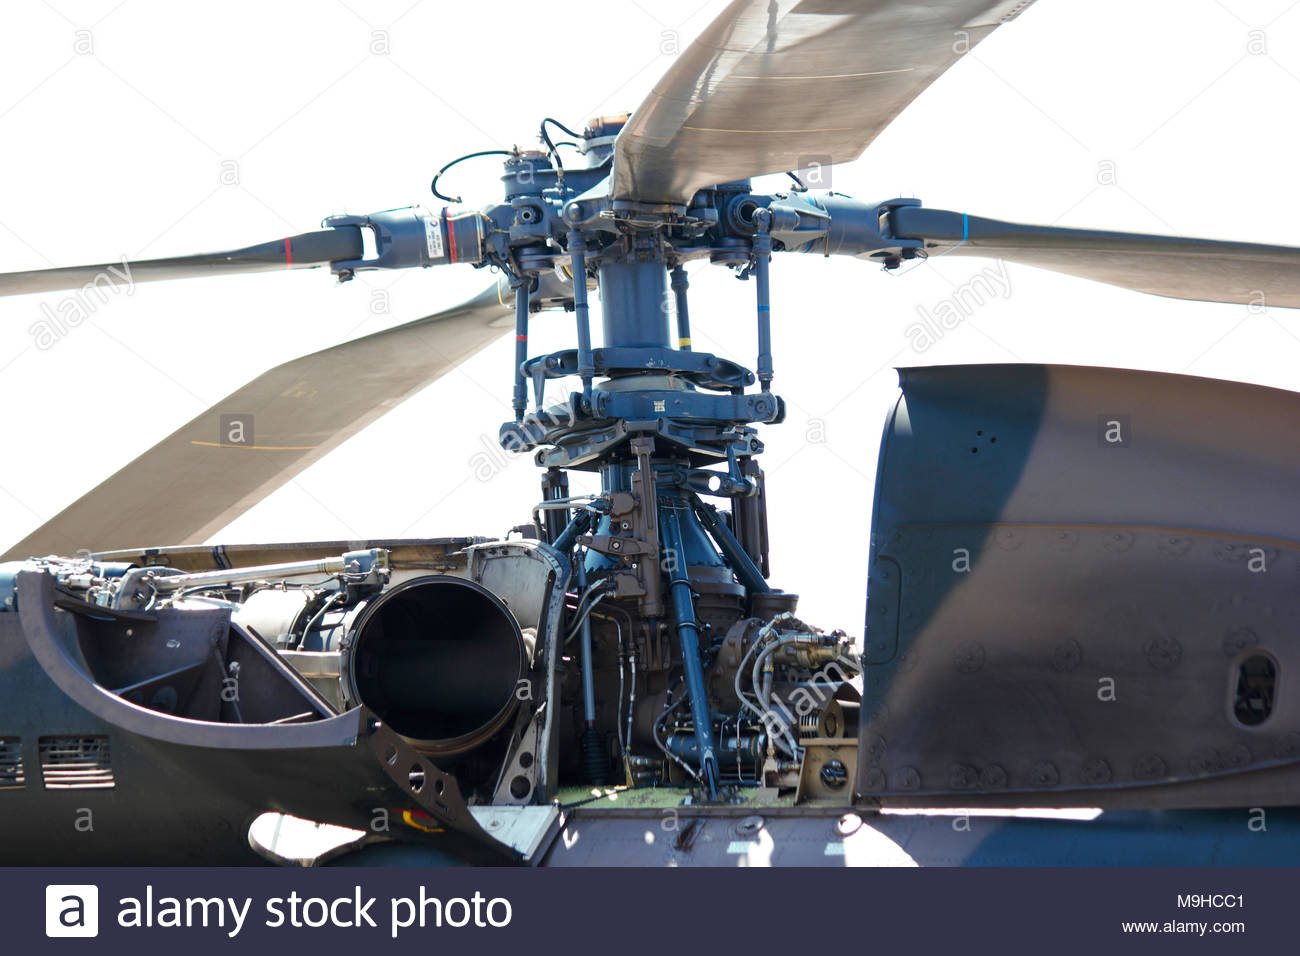 Atlas Oryx Helicopter Rotor Head Detail - Stock Image